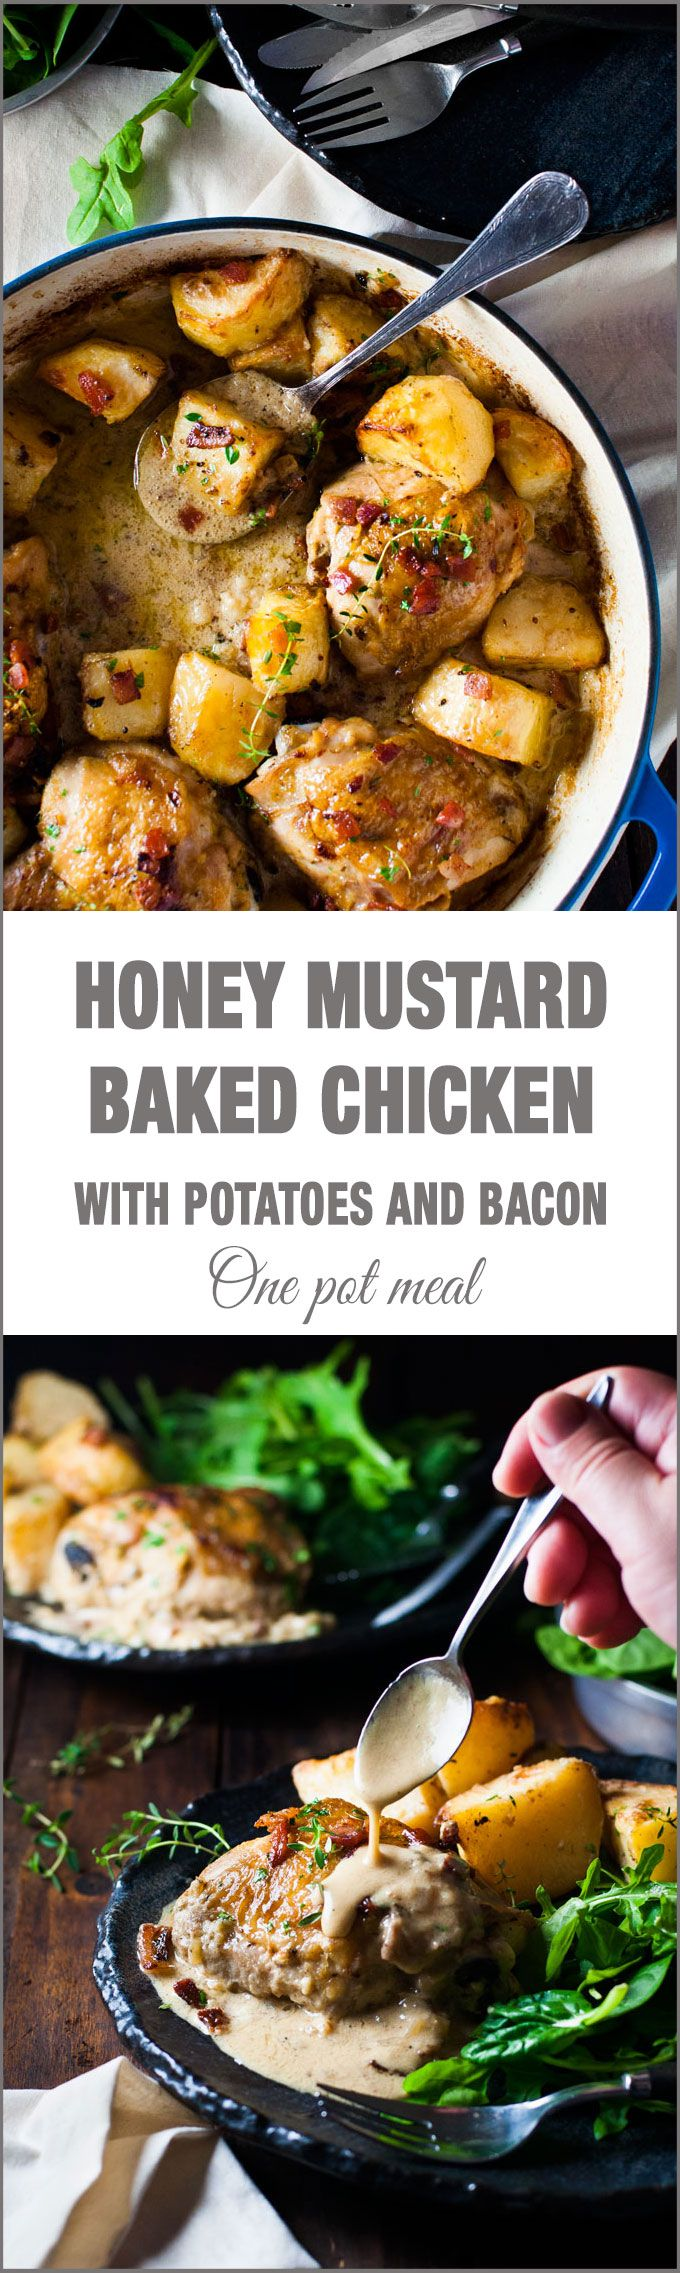 Honey Mustard Baked Chicken With Potatoes Bacon